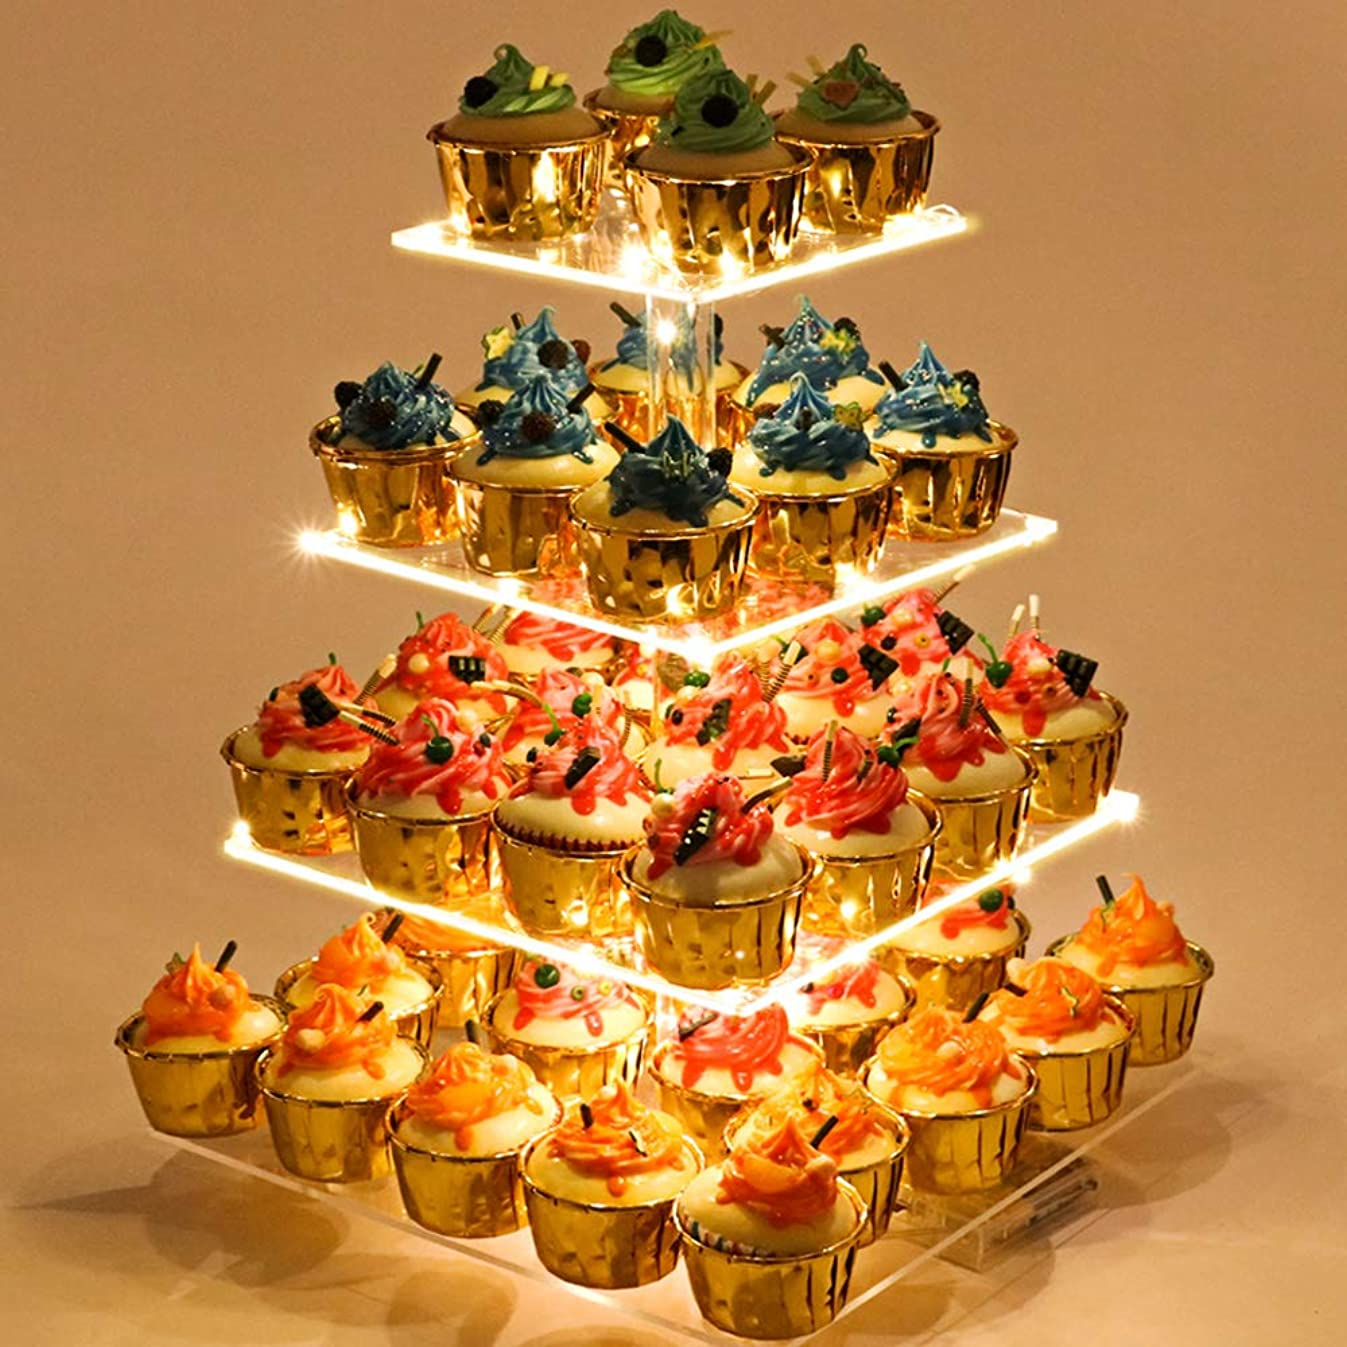 Cupcake Stand – Premium Cupcake Holder – Acrylic Cupcake Tower Display – Cady Bar Party Décor – 4 Tier Acrylic Display for Pastry + LED Light String – Ideal for Weddings, Birthday Parties & Events